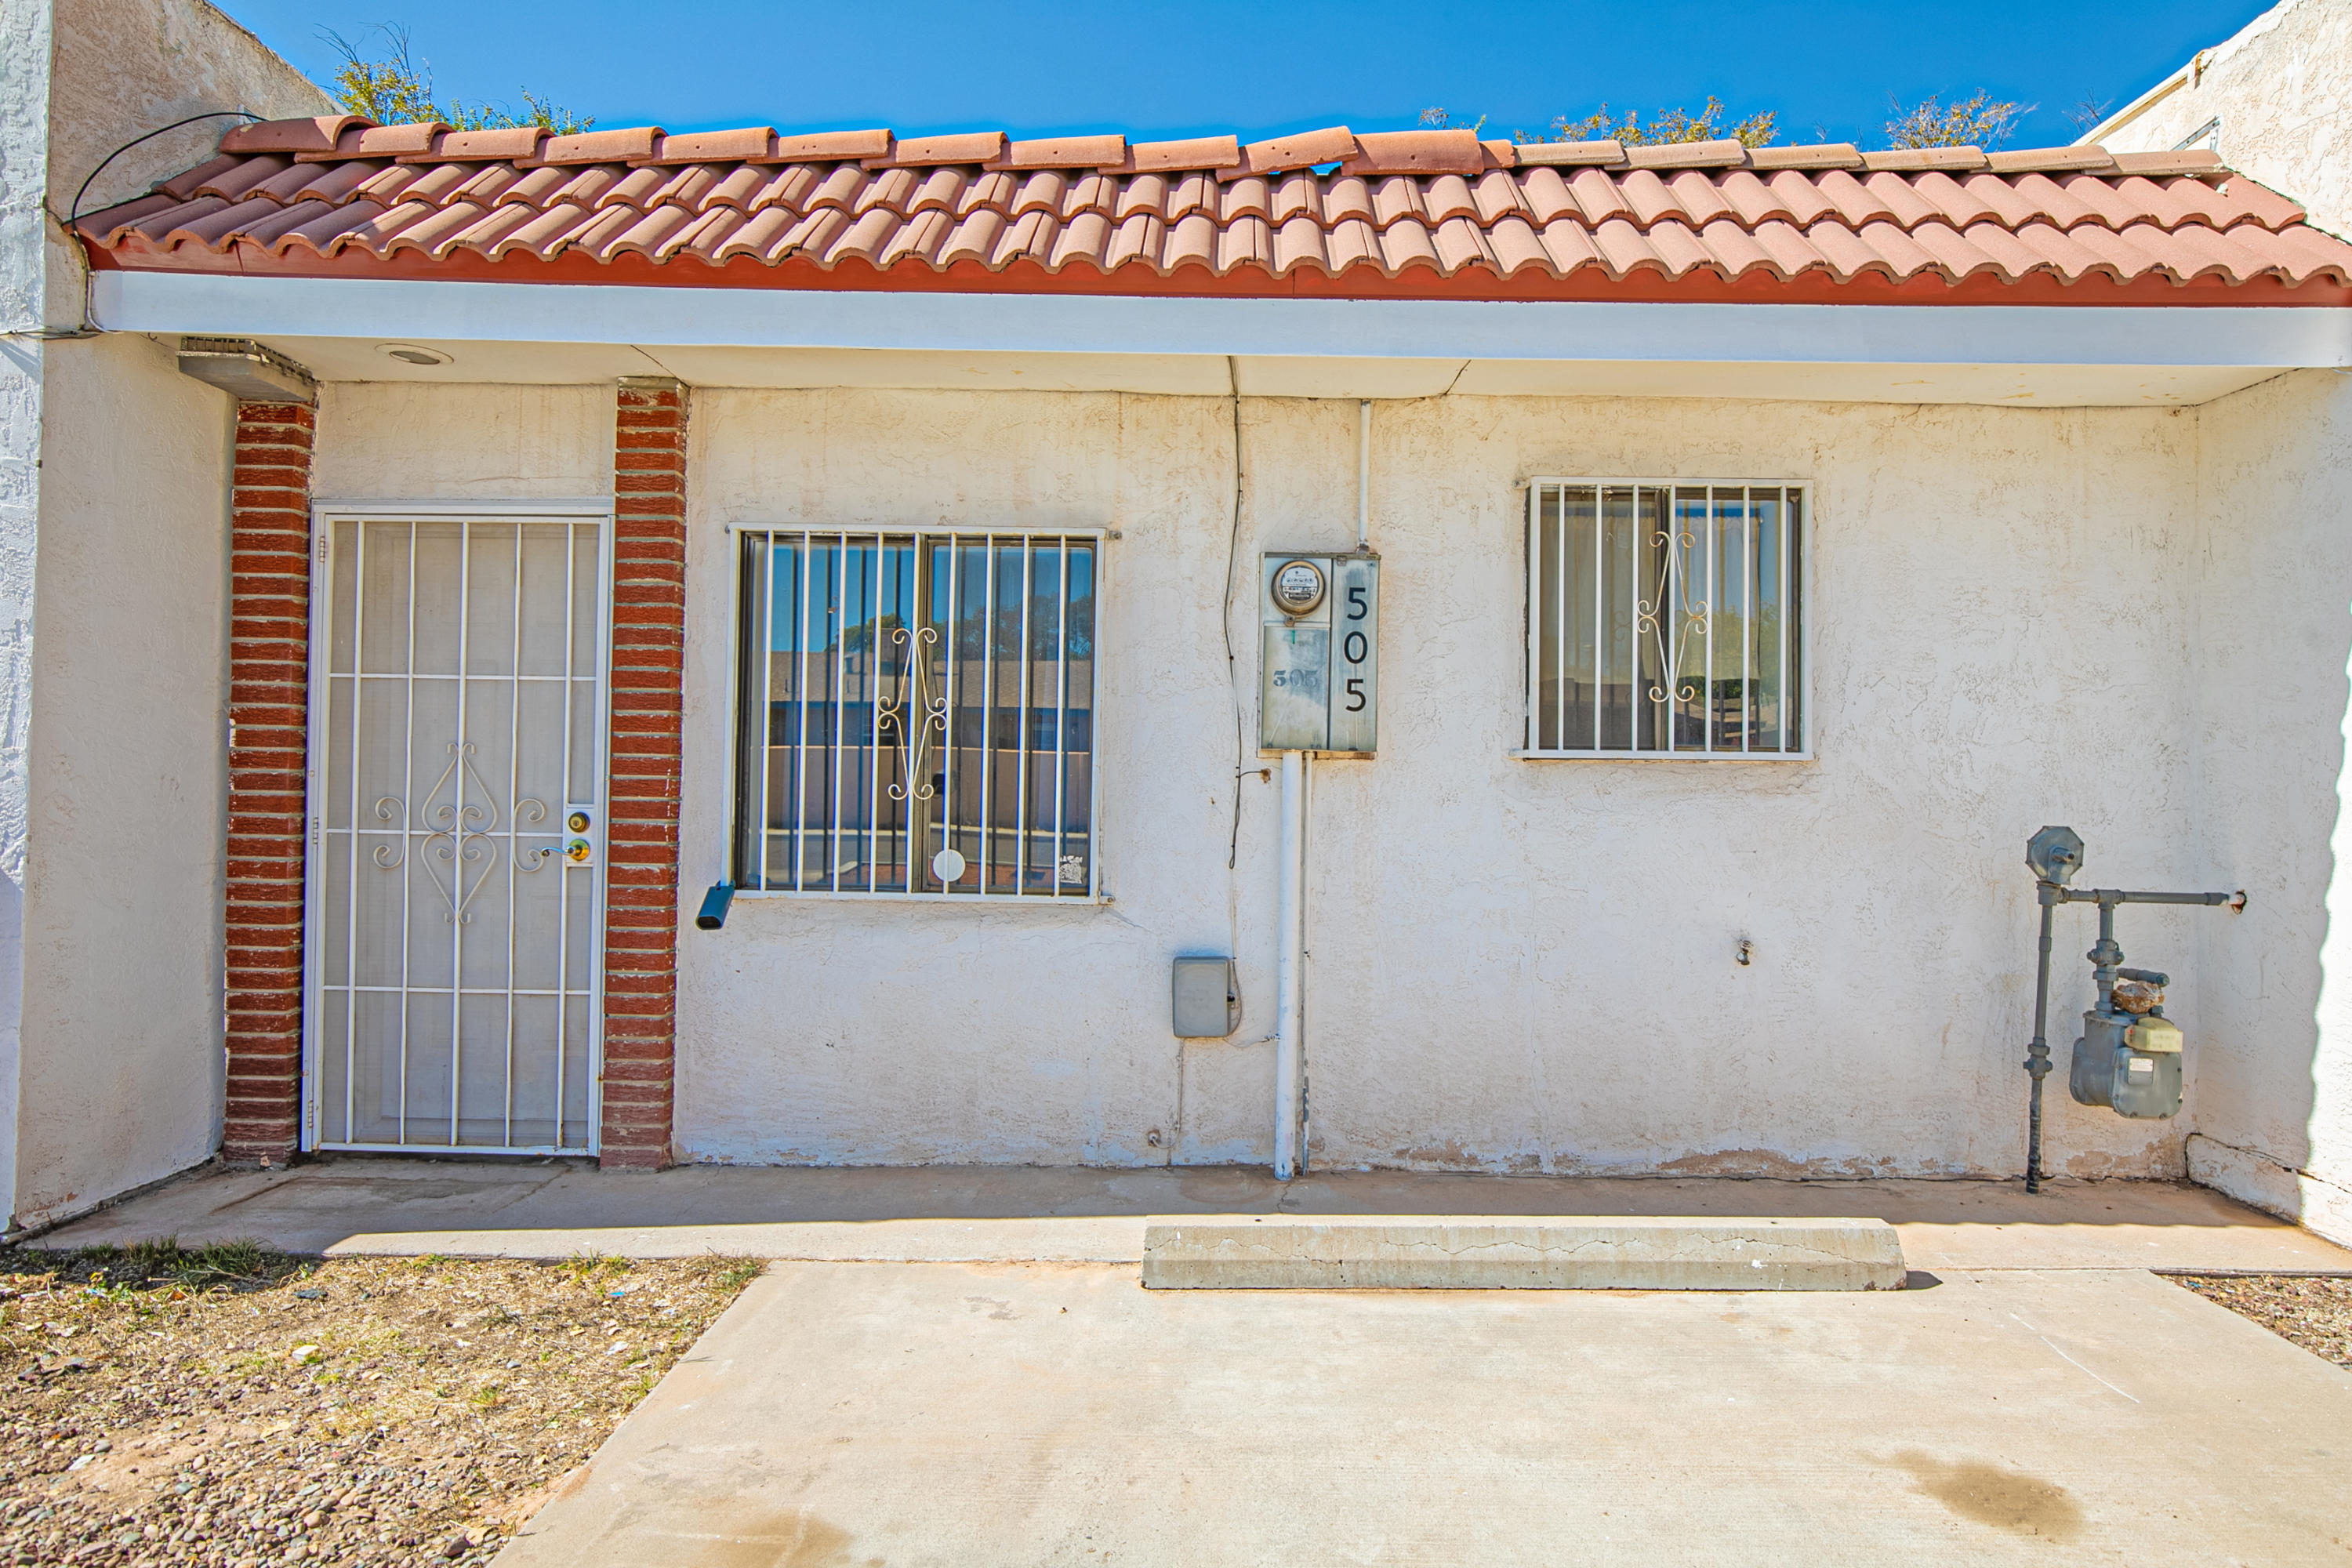 Cute condo in the heart of Los Lunas. Convenient travel to schools, shopping, railrunner, and freeway access. There are NO HOA fees meaning payments may be lower than rent at this price range! TPO roof, nice laminate floors and tile throughout, and all appliances stay! This is move in ready!